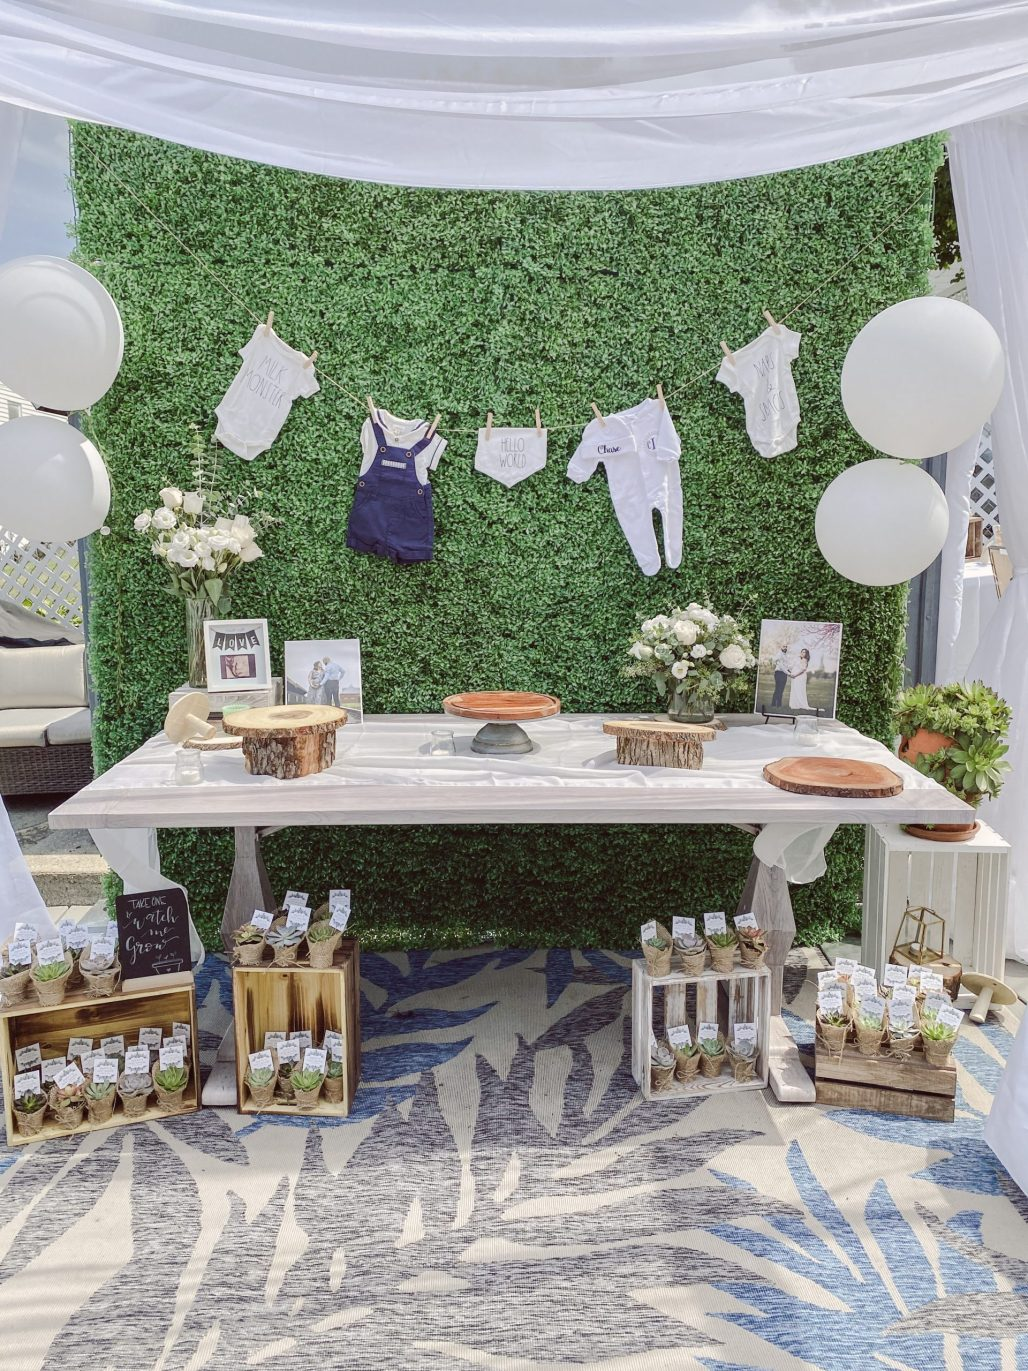 When a Rescheduled Baby Shower becomes a Calming & Safe Outdoor Affair || Dreamery Events